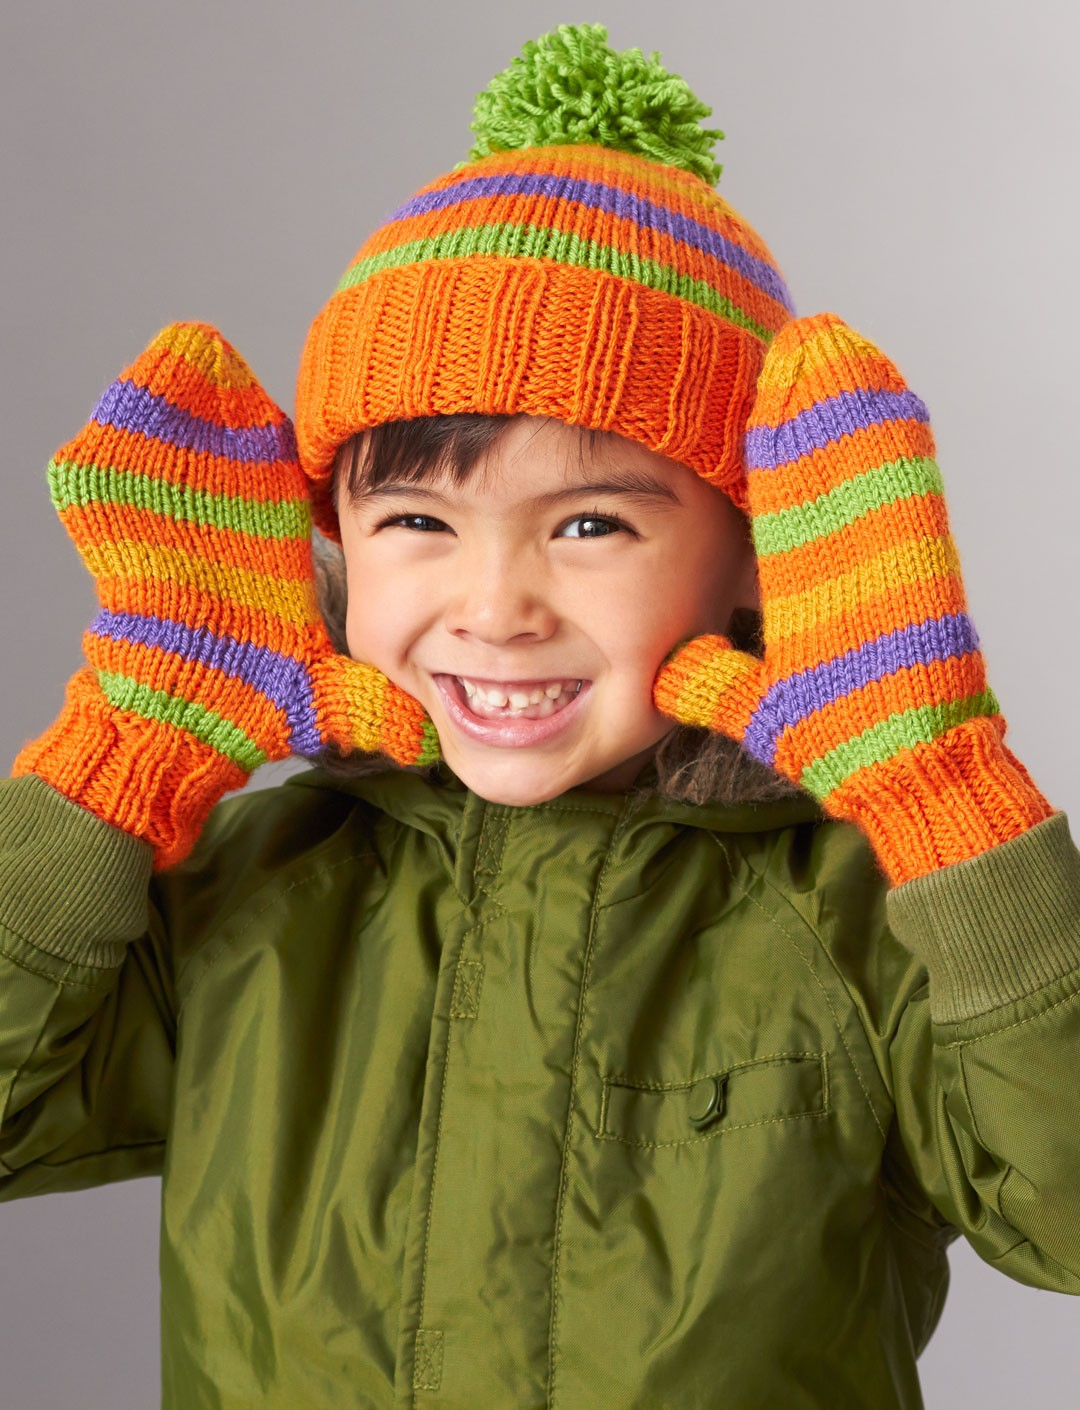 Free Knitting Patterns Hats Scarves Gloves : Patons Striped Basic Hat and Mittens 4 Needles, Knit Pattern Yarnspirations